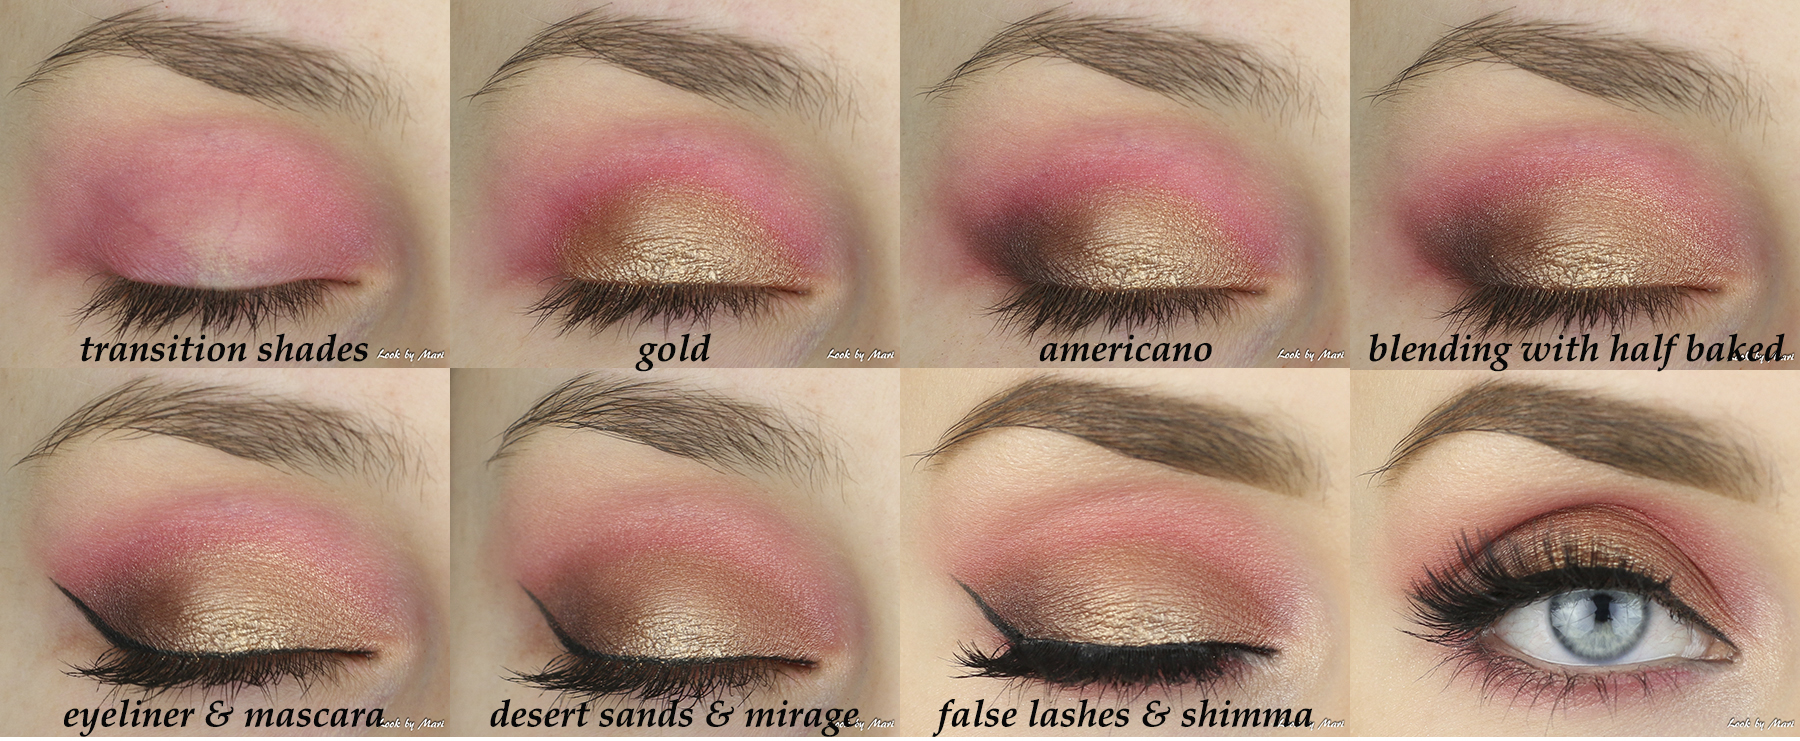 5 bold colorful eye makeup ideas tutorial makeup geek americano desert sands gold half baked